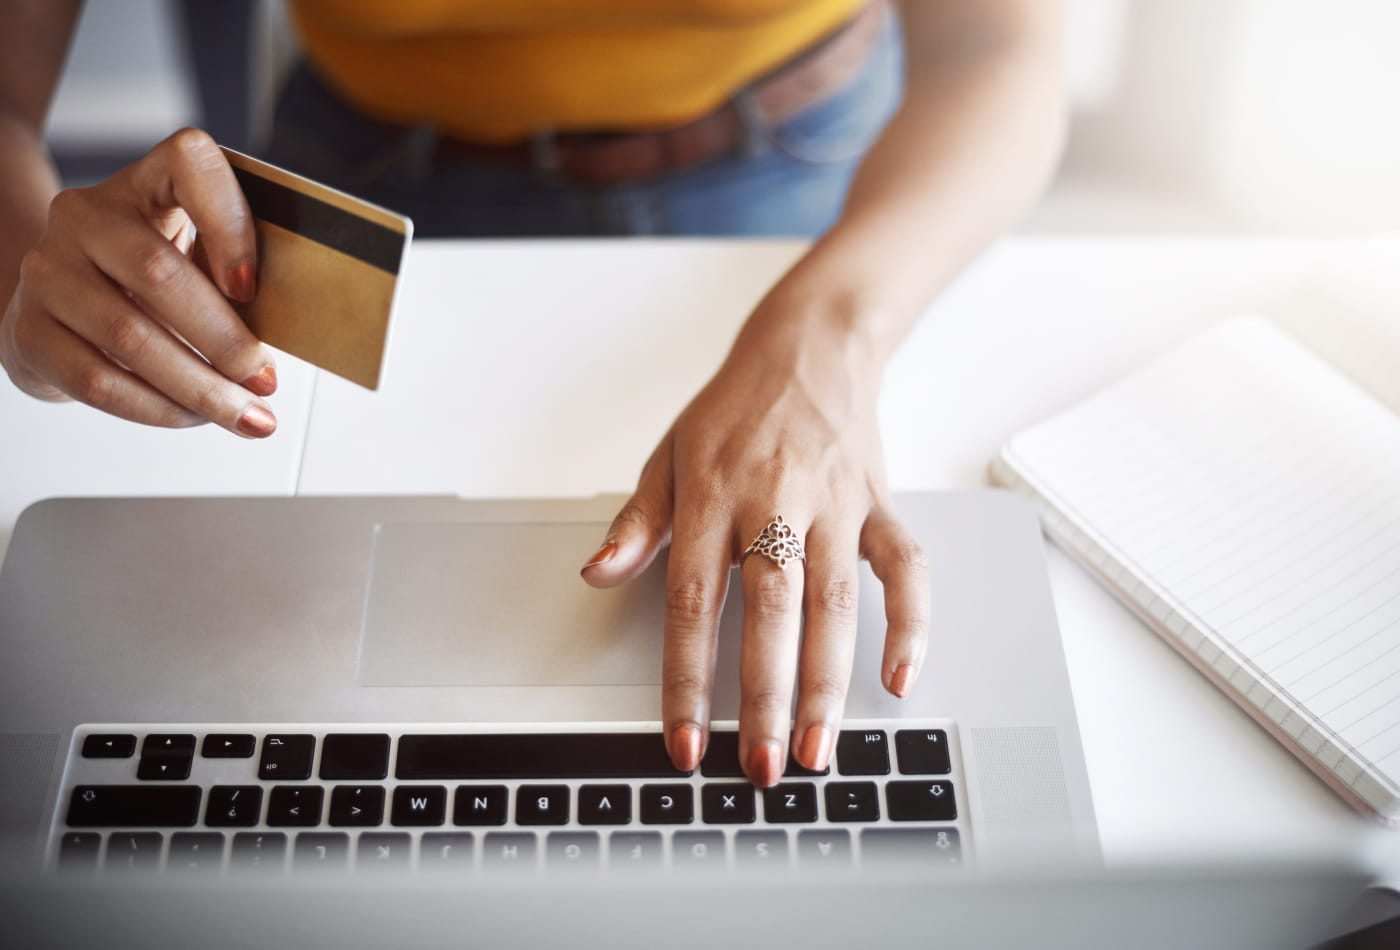 Don't want to pay your credit card's annual fee? Here's how to ask for a retention offer